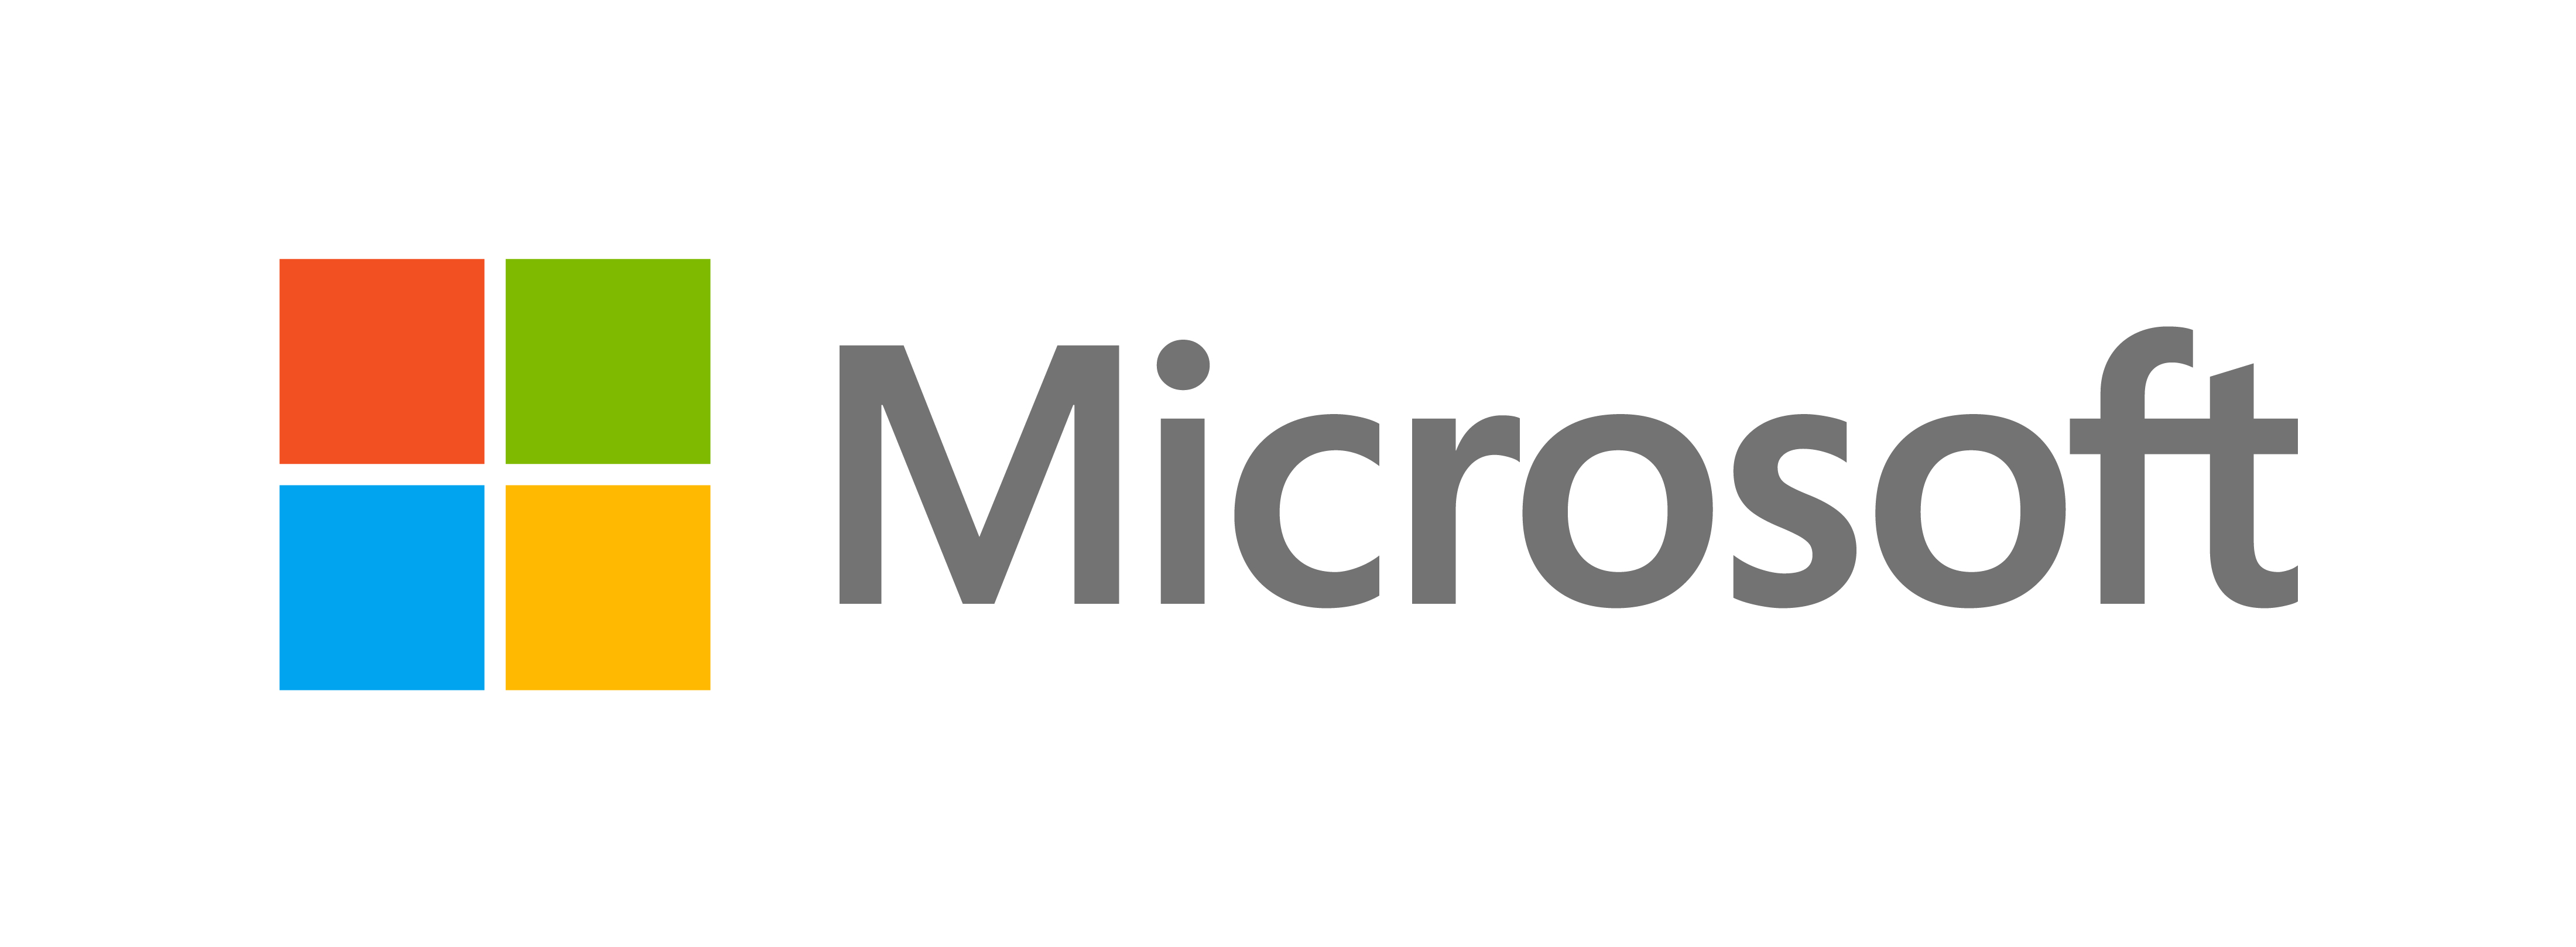 Microsoft Unveils A New Look The Official Microsoft Blog